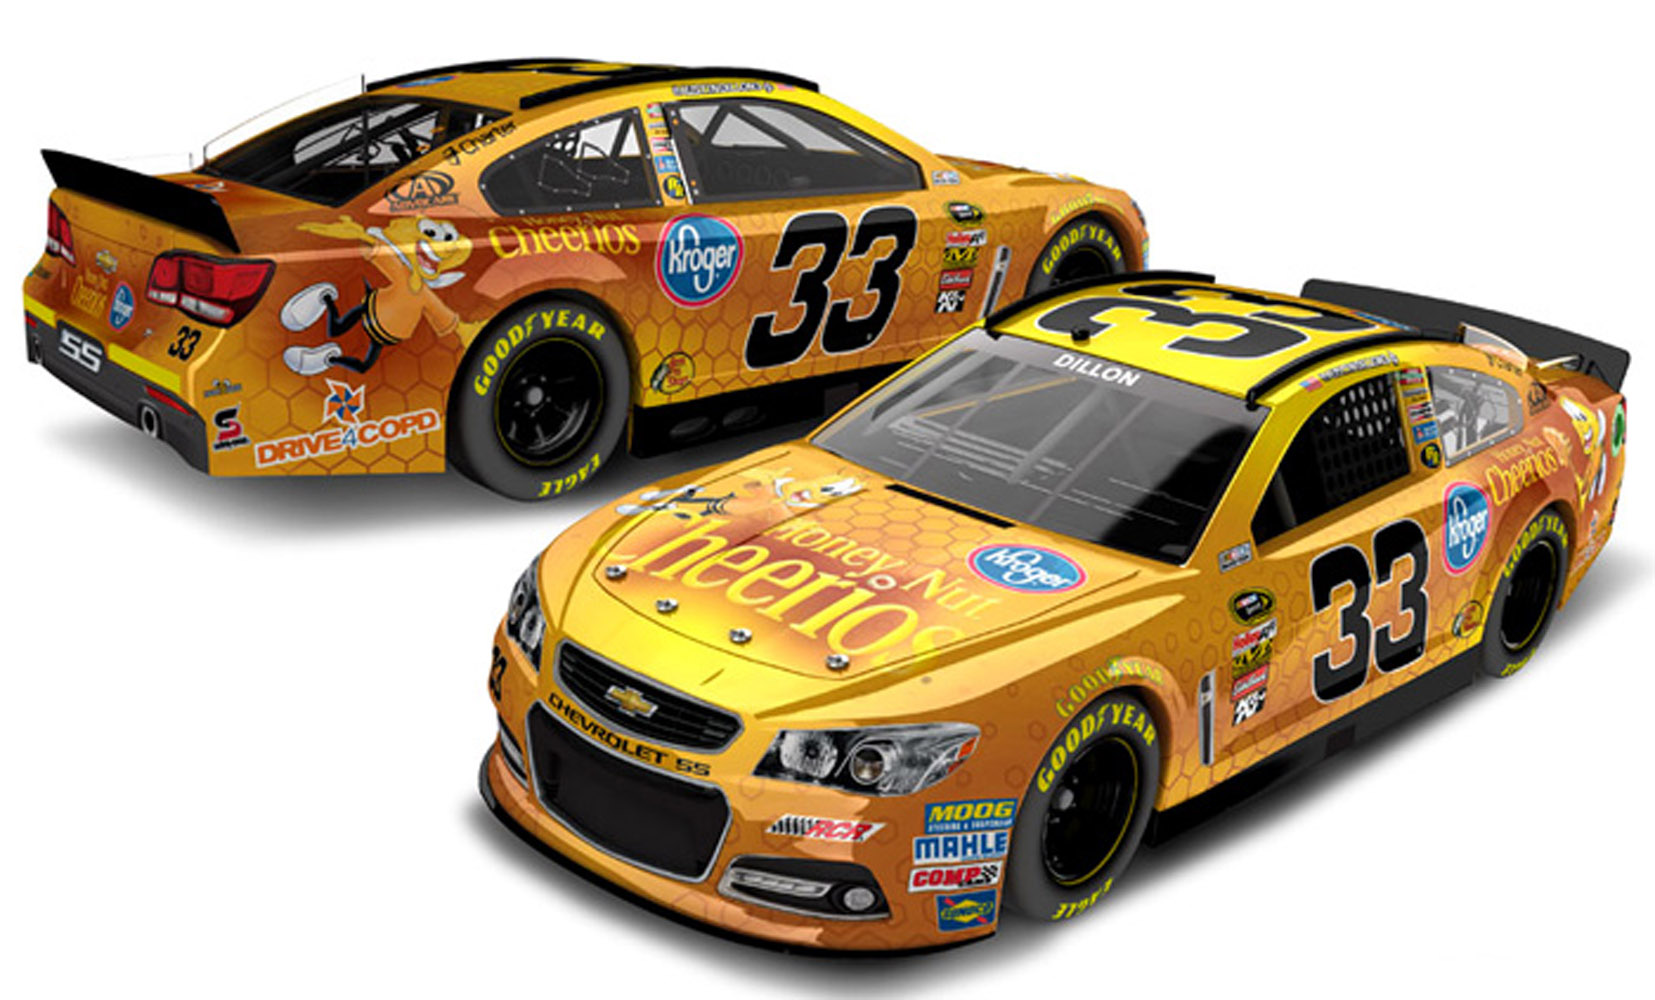 2013 Austin Dillon #33 Honey Nut Cheerios 1:24 Diecast Car